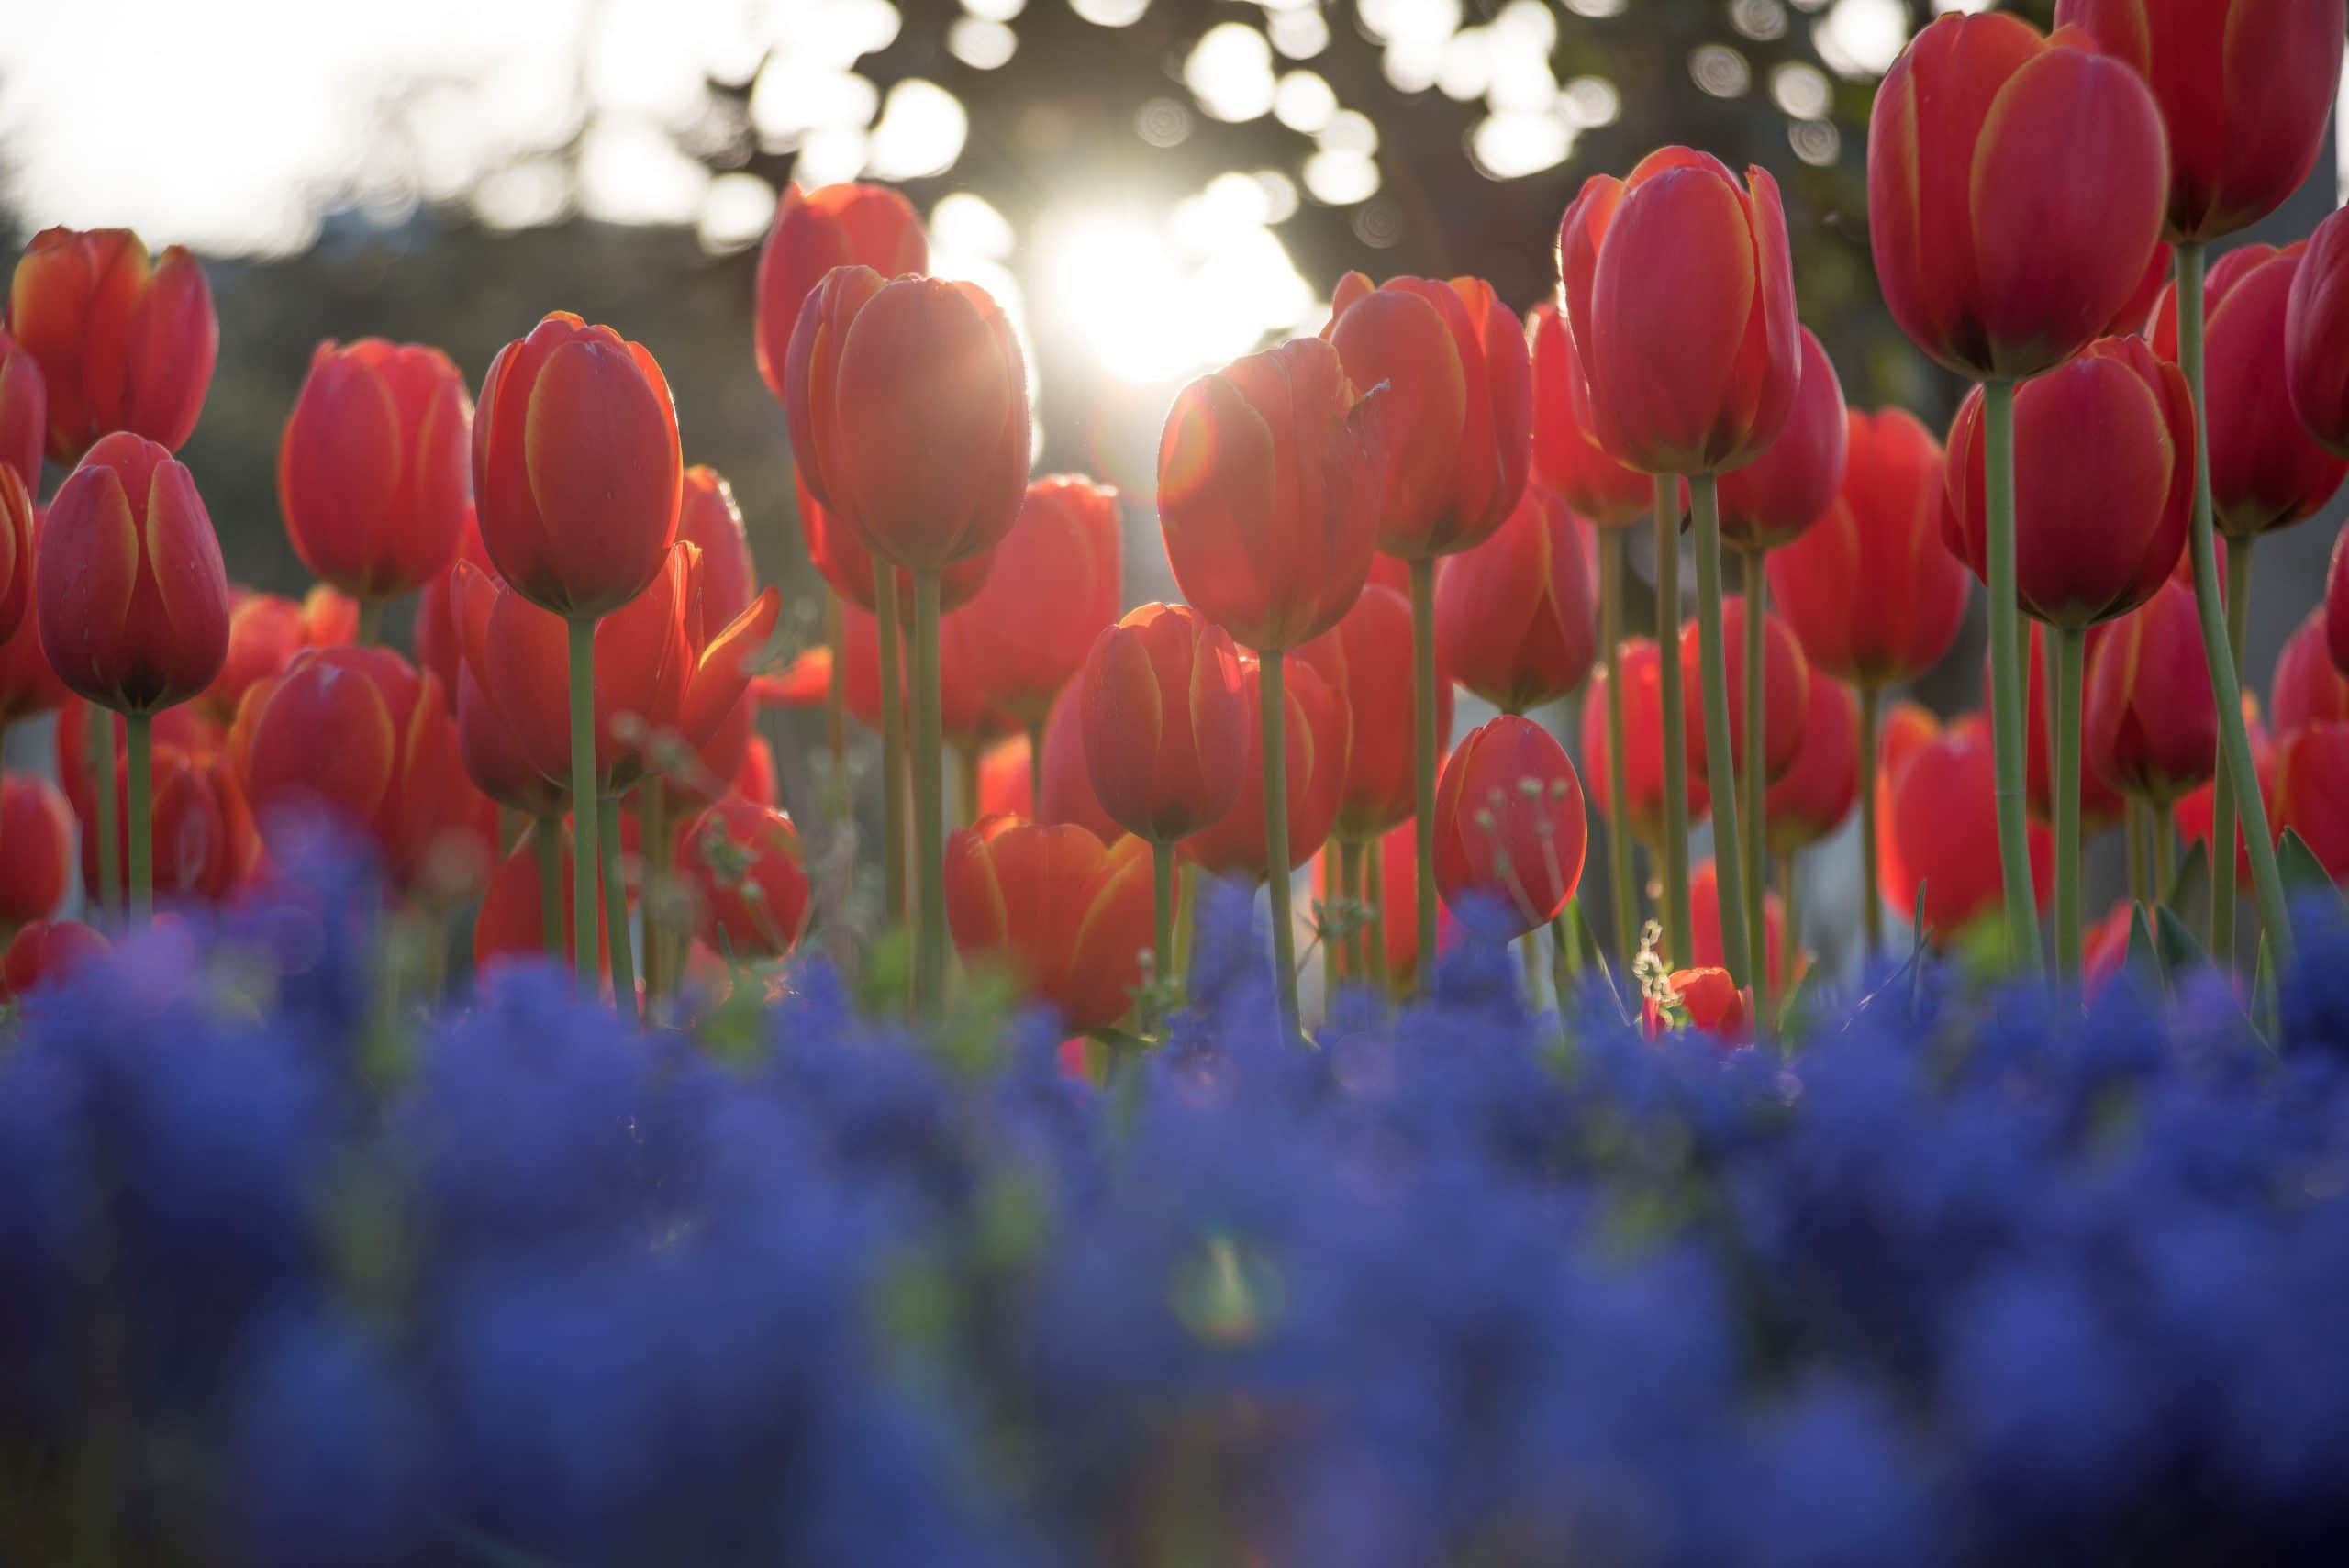 red tulips and psychology of color